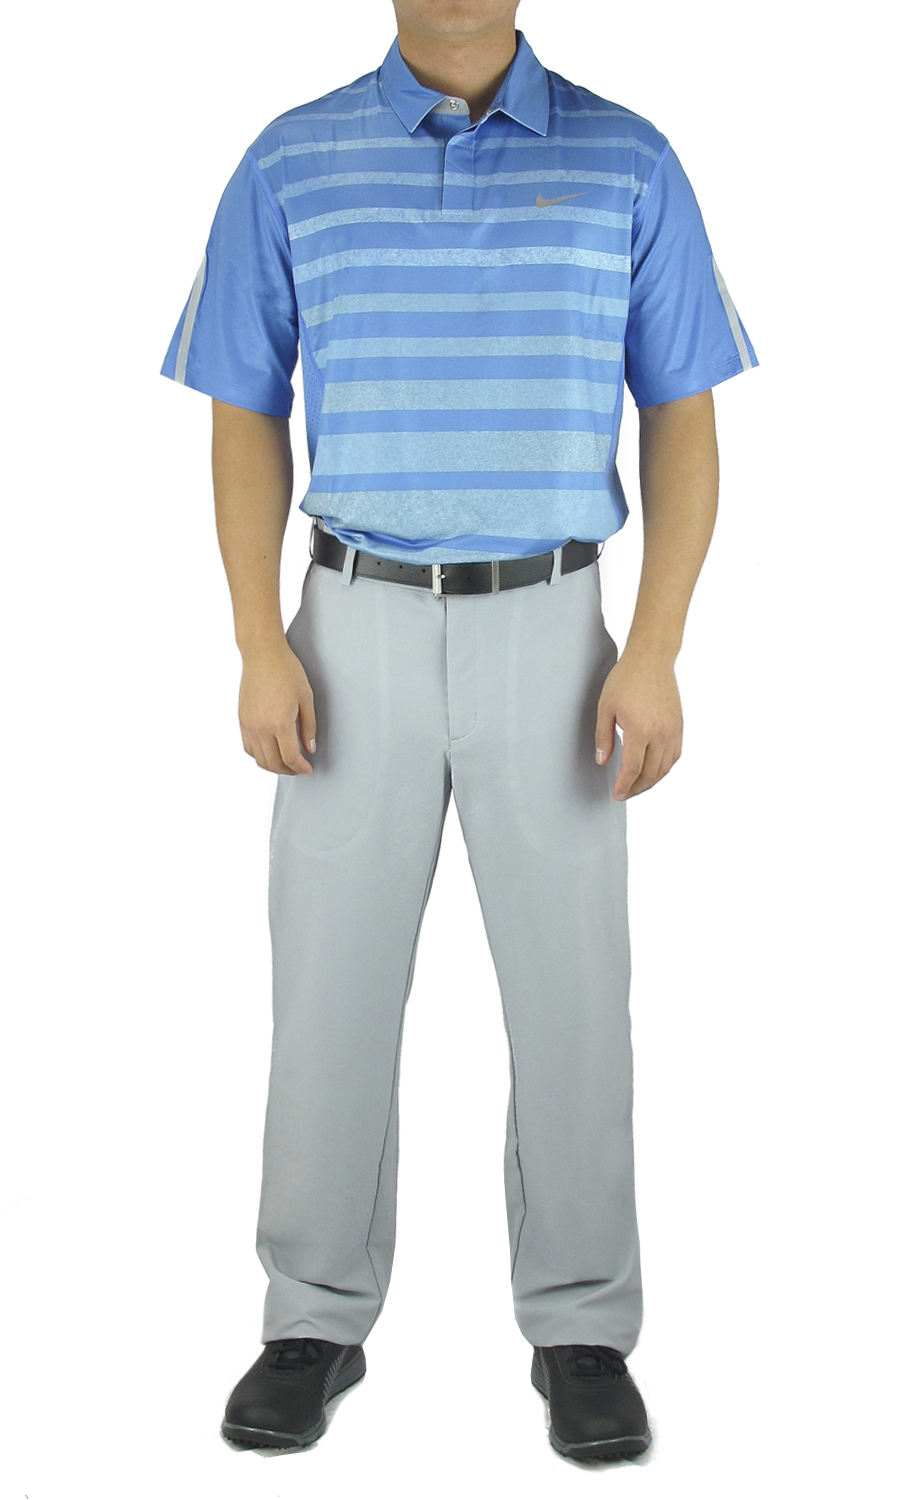 2013 Winter Golf Apparel Buyers Guide